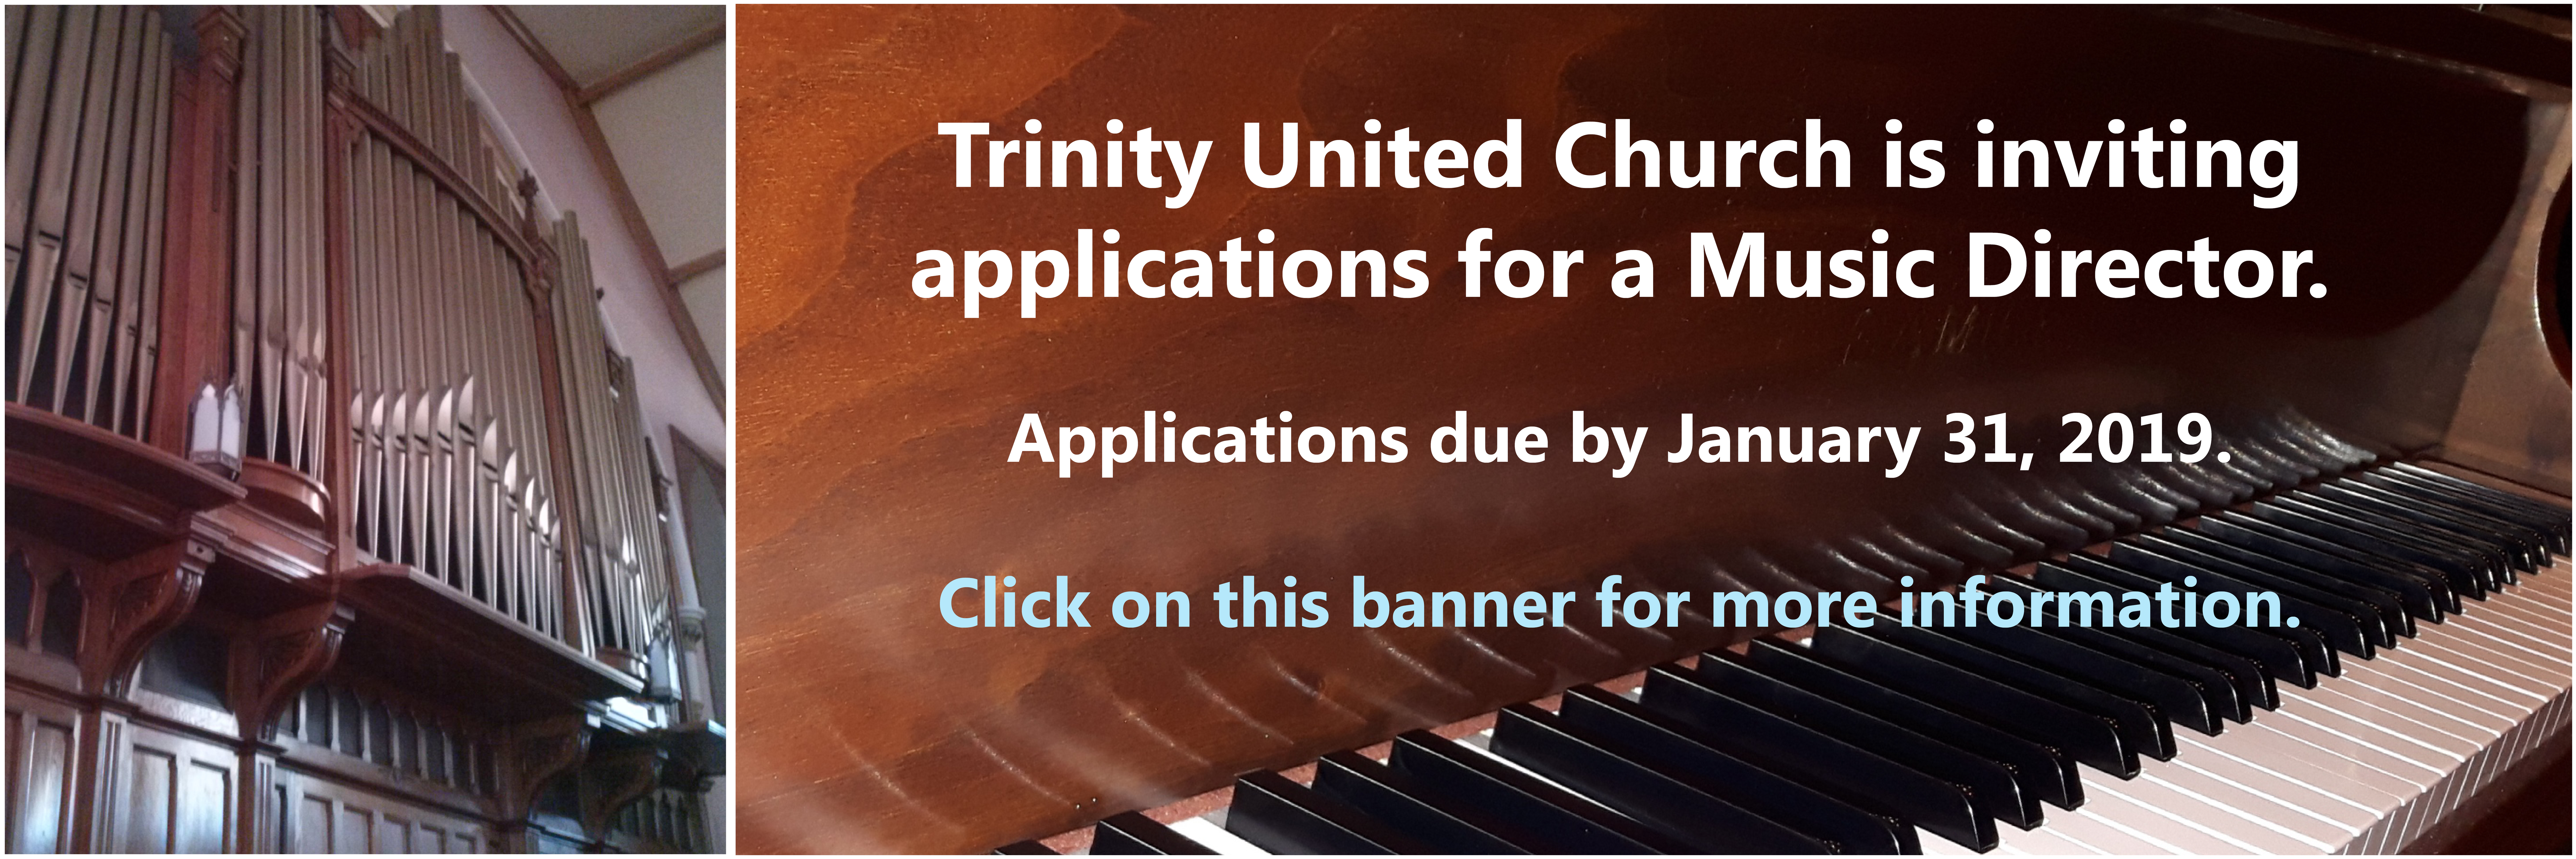 Trinity United Church in Bowmanville, Ontario is inviting applications for a Music Director.